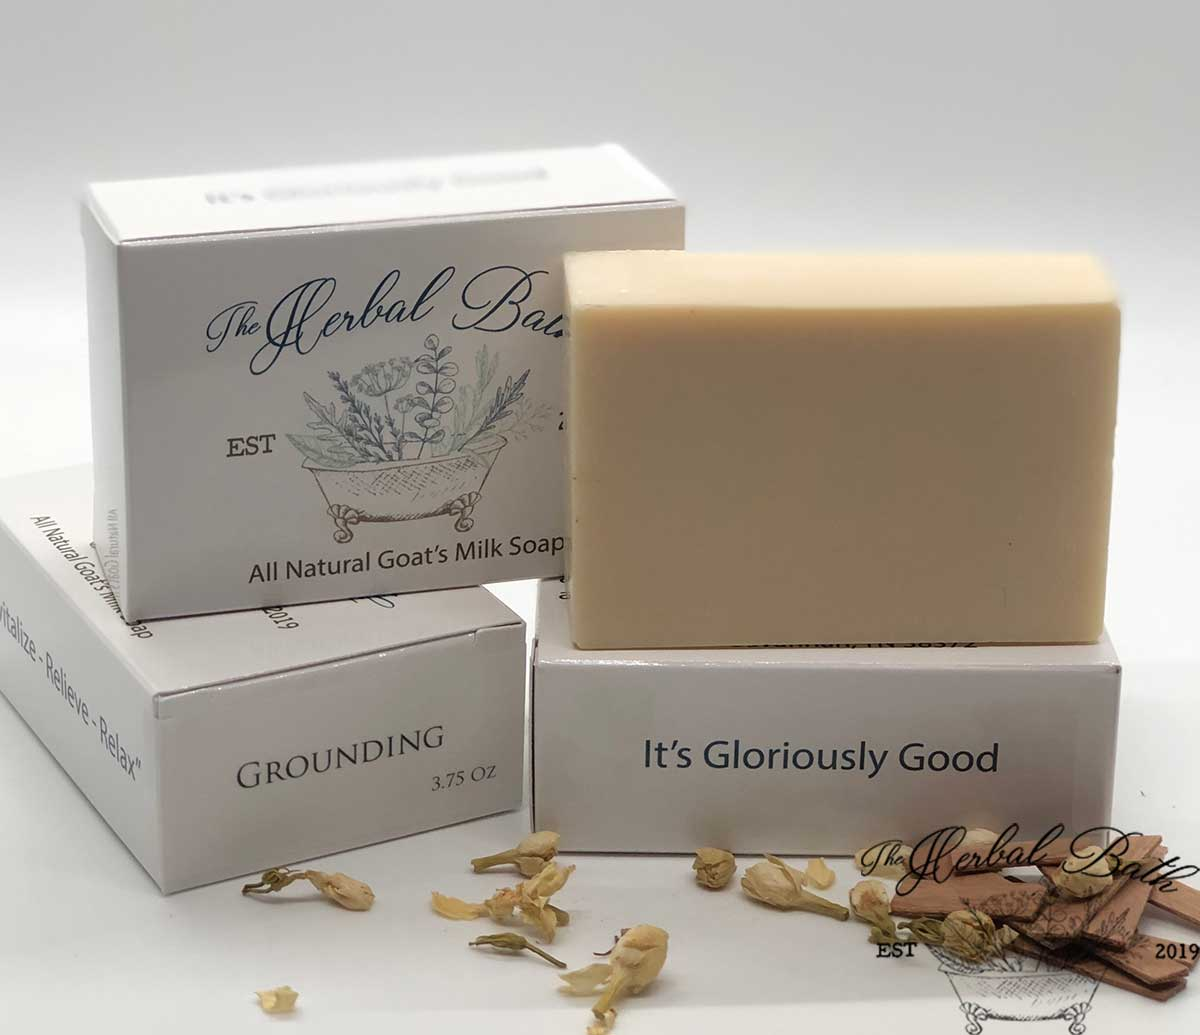 Grounding-Goat\'s milk soap